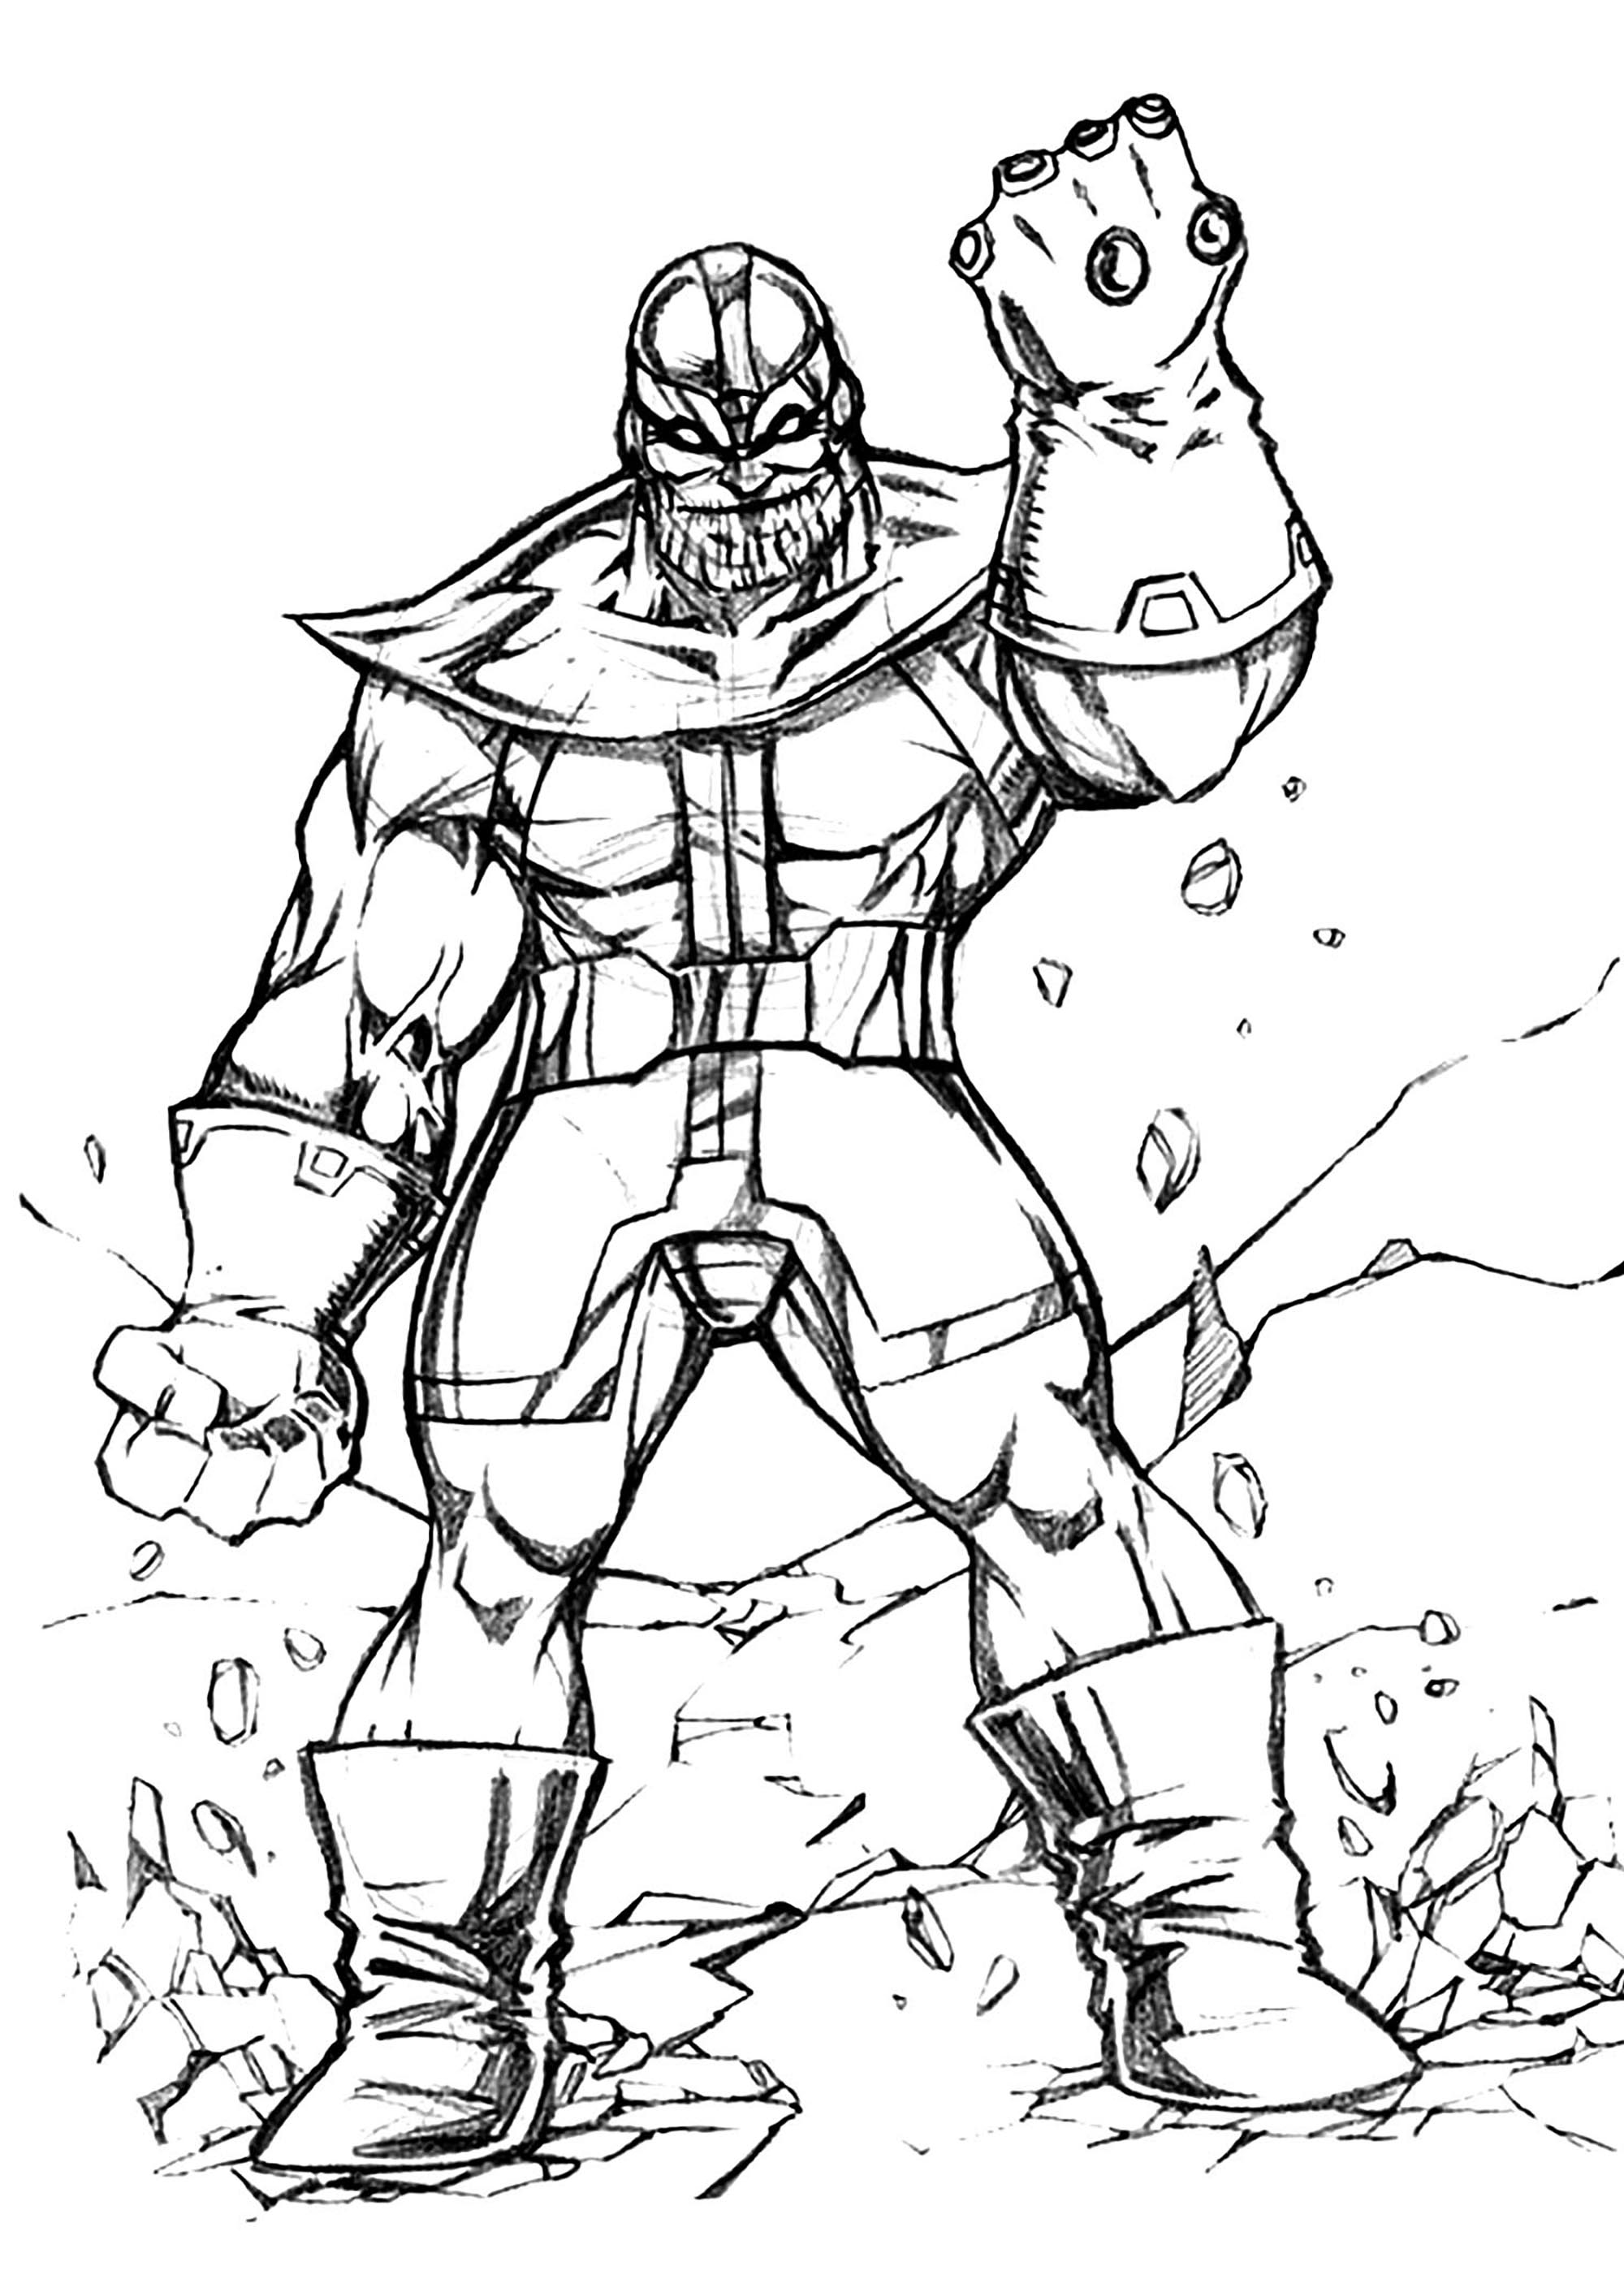 Thanos coloring page to download for free